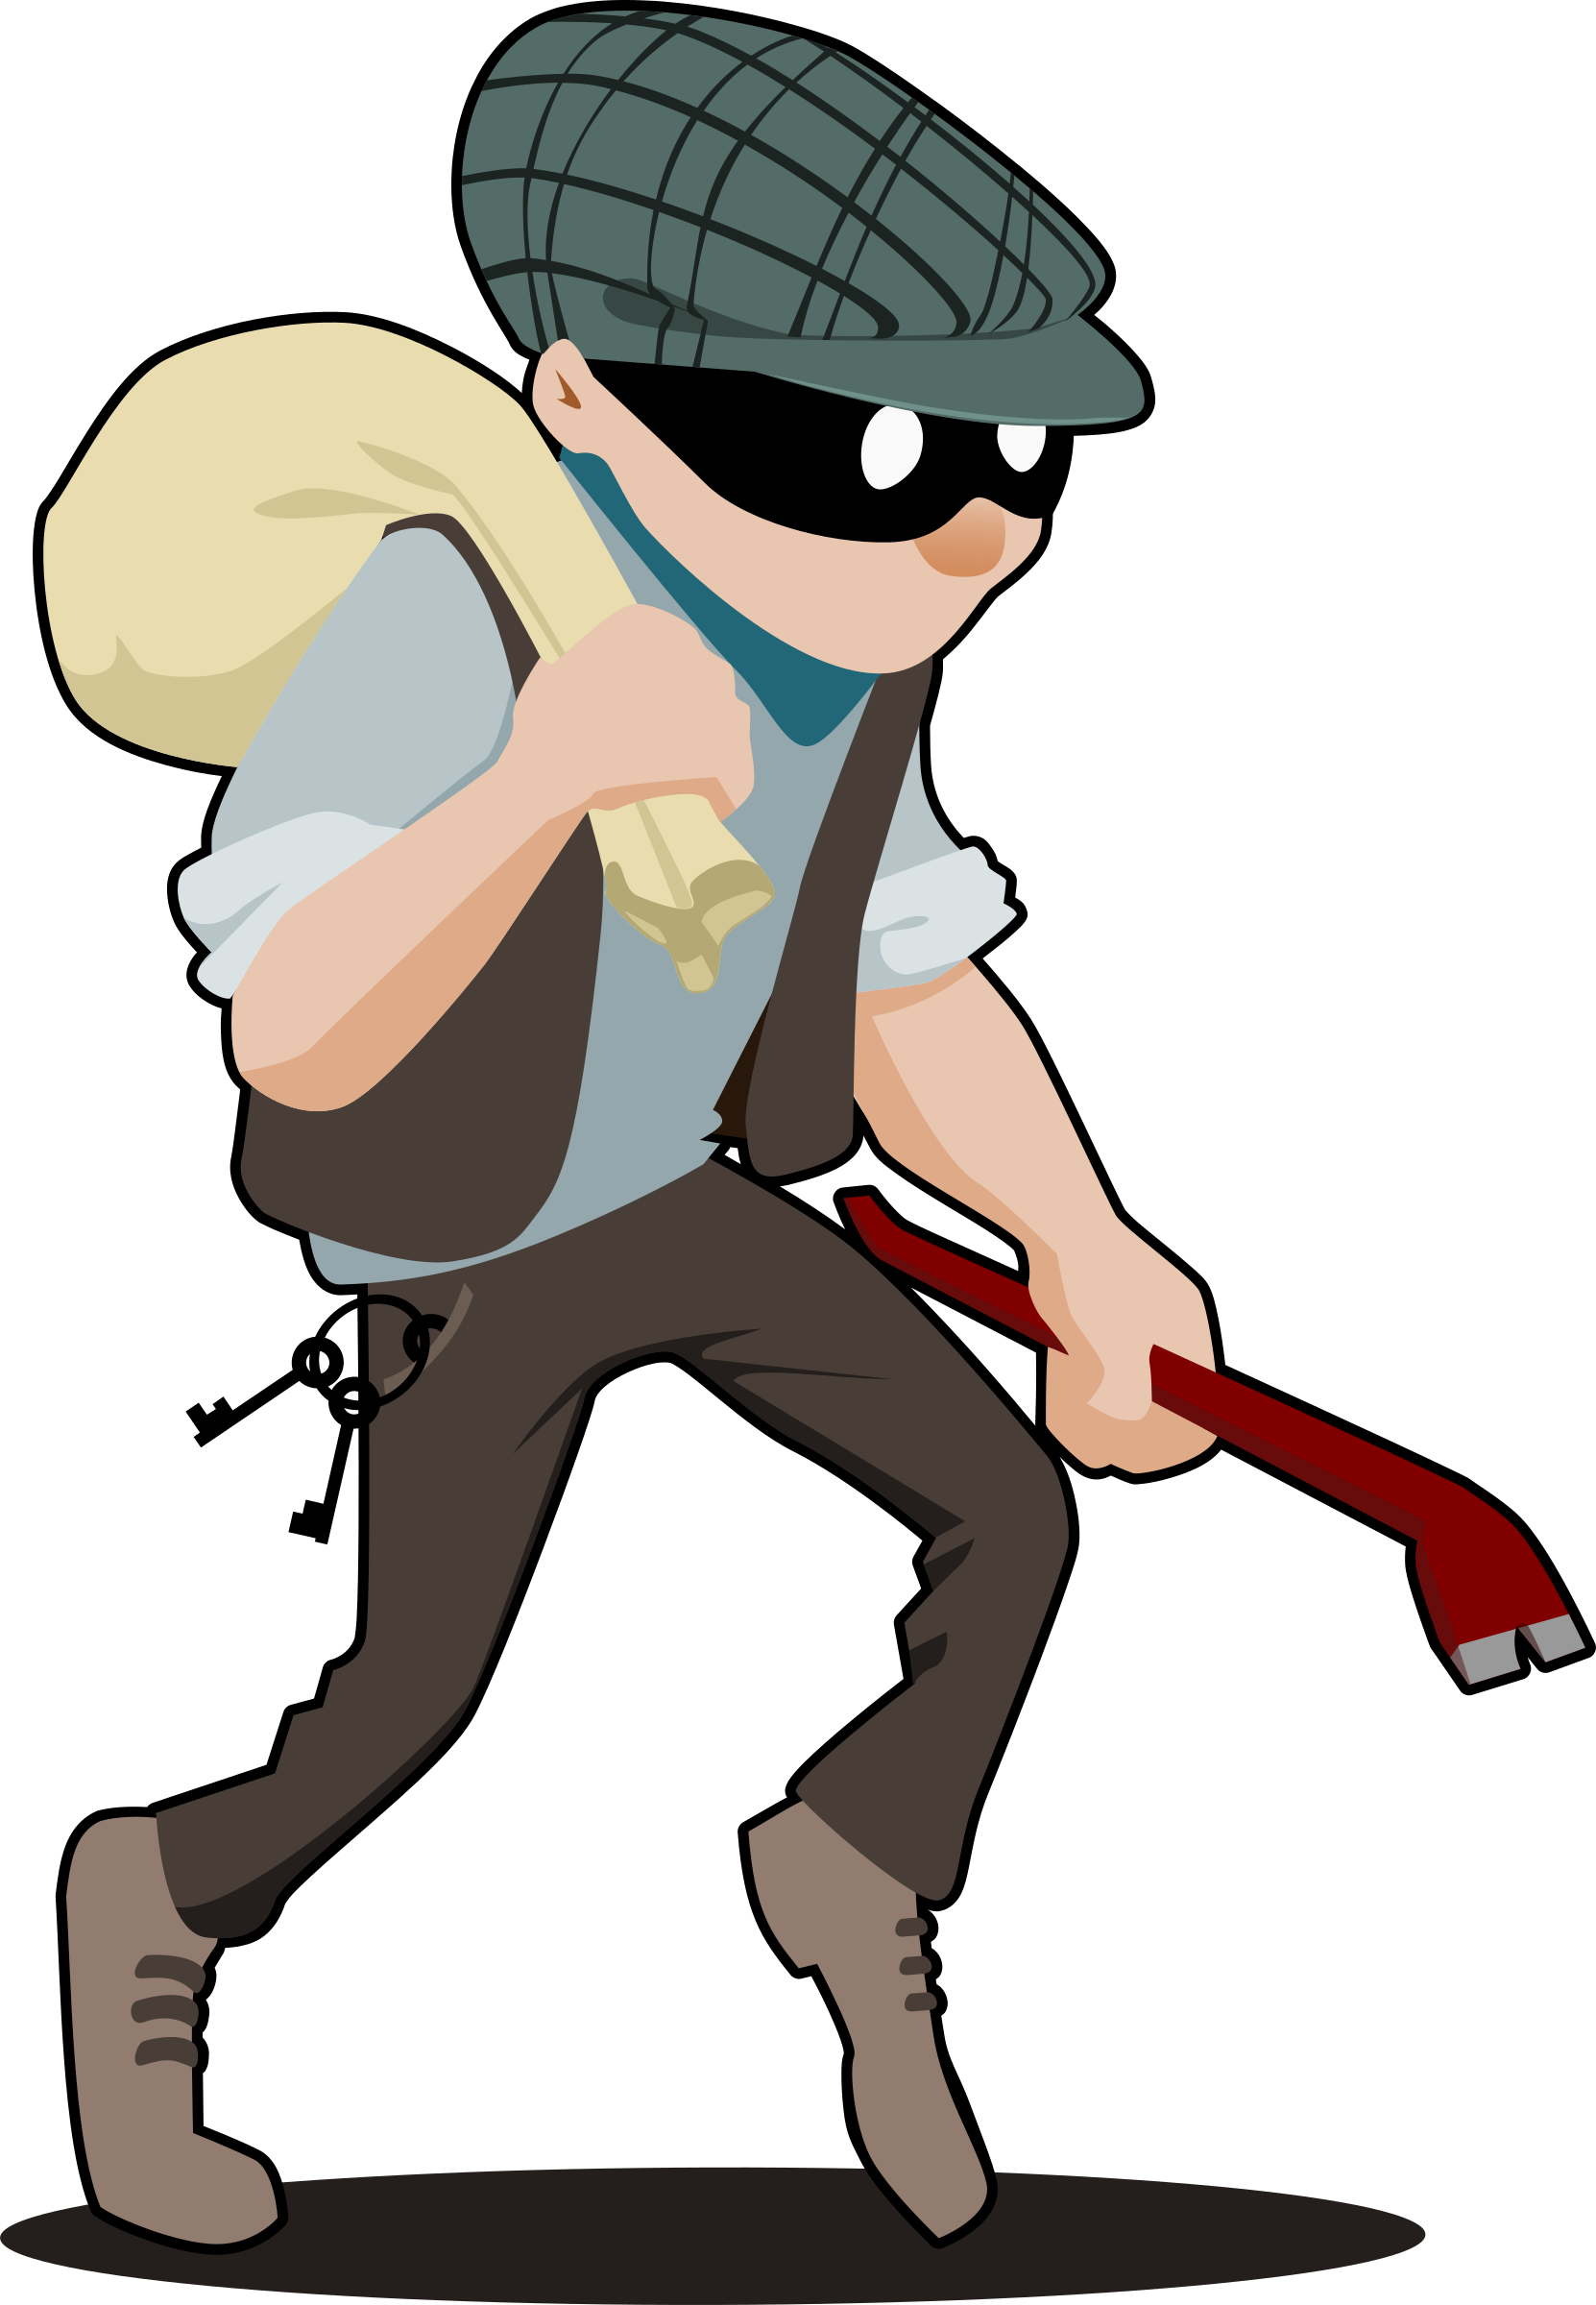 clipart library Robber clipart. Burglar big image png.